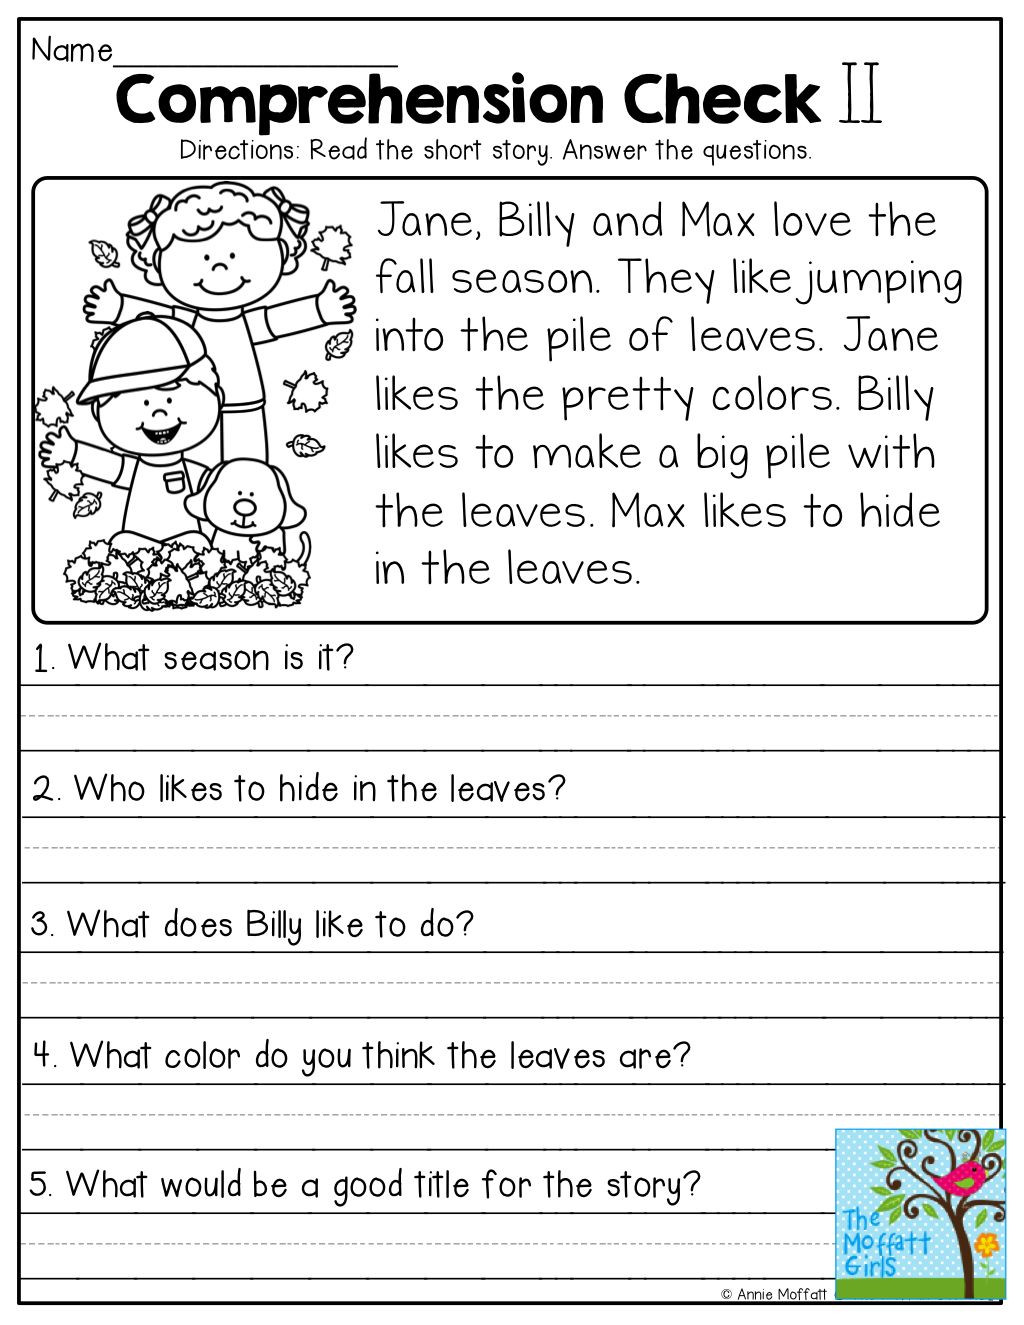 Grade 1 Reading Worksheets Reading Worksheets for 1st Graders Free